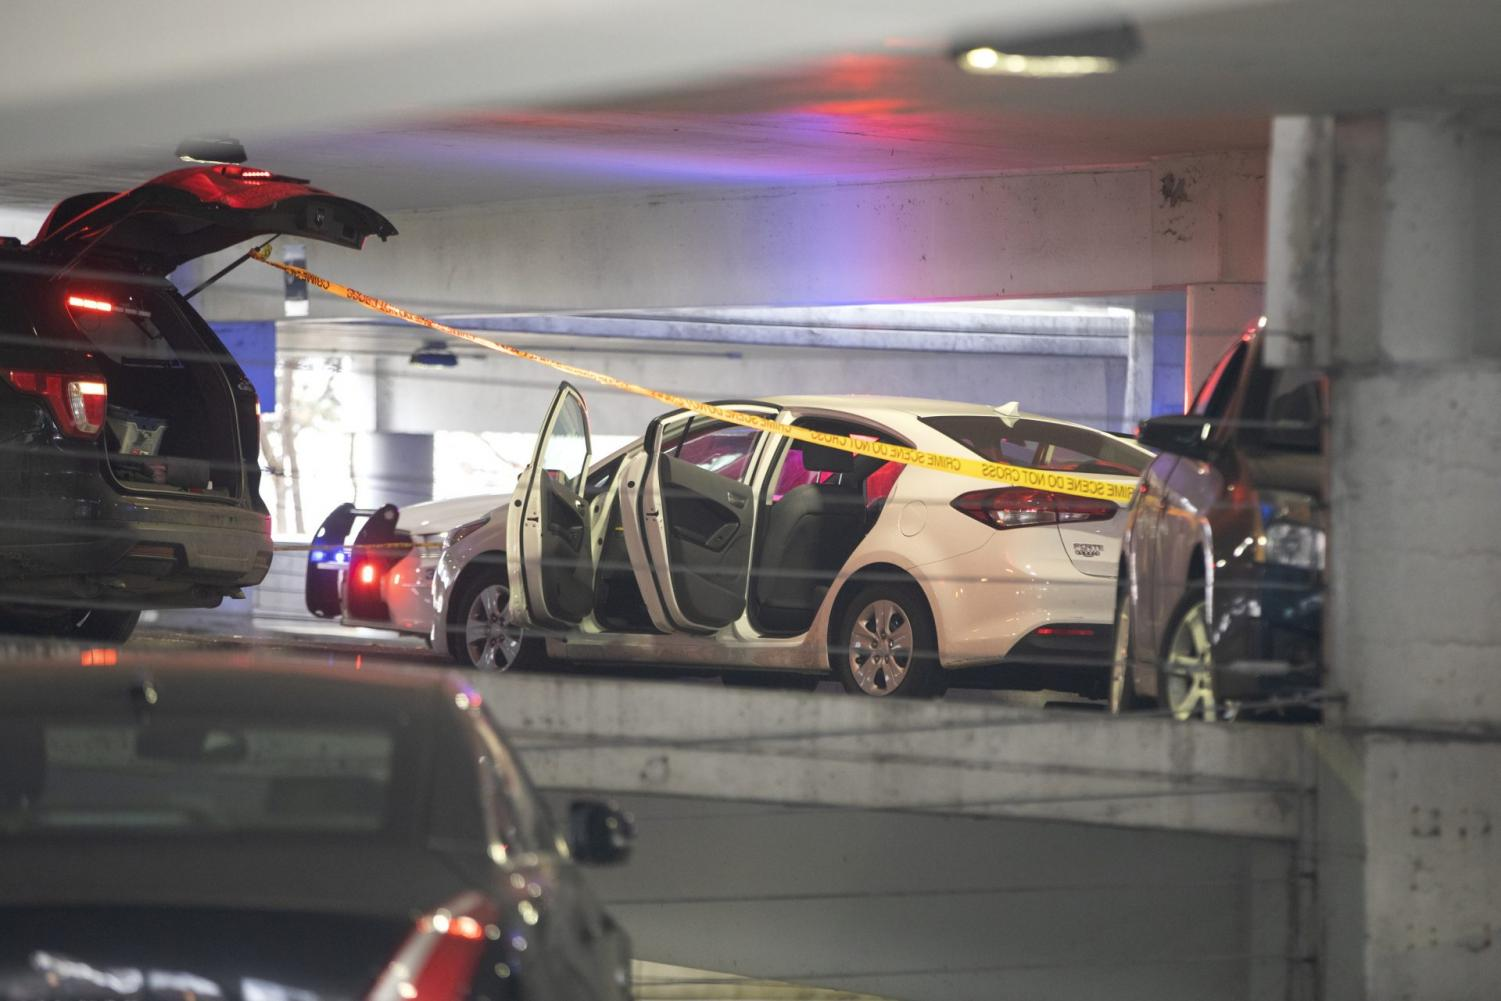 A white vehicle is parked at the scene of a death investigation in a University of Illinois at Chicago parking garage Saturday, Nov. 23, 2019, in Chicago. Authorities say the body of a missing University of Illinois at Chicago student has been found in a car inside campus parking garage.The Cook County medical examiner identified the woman found Saturday as 19-year-old Ruth George of Berwyn.